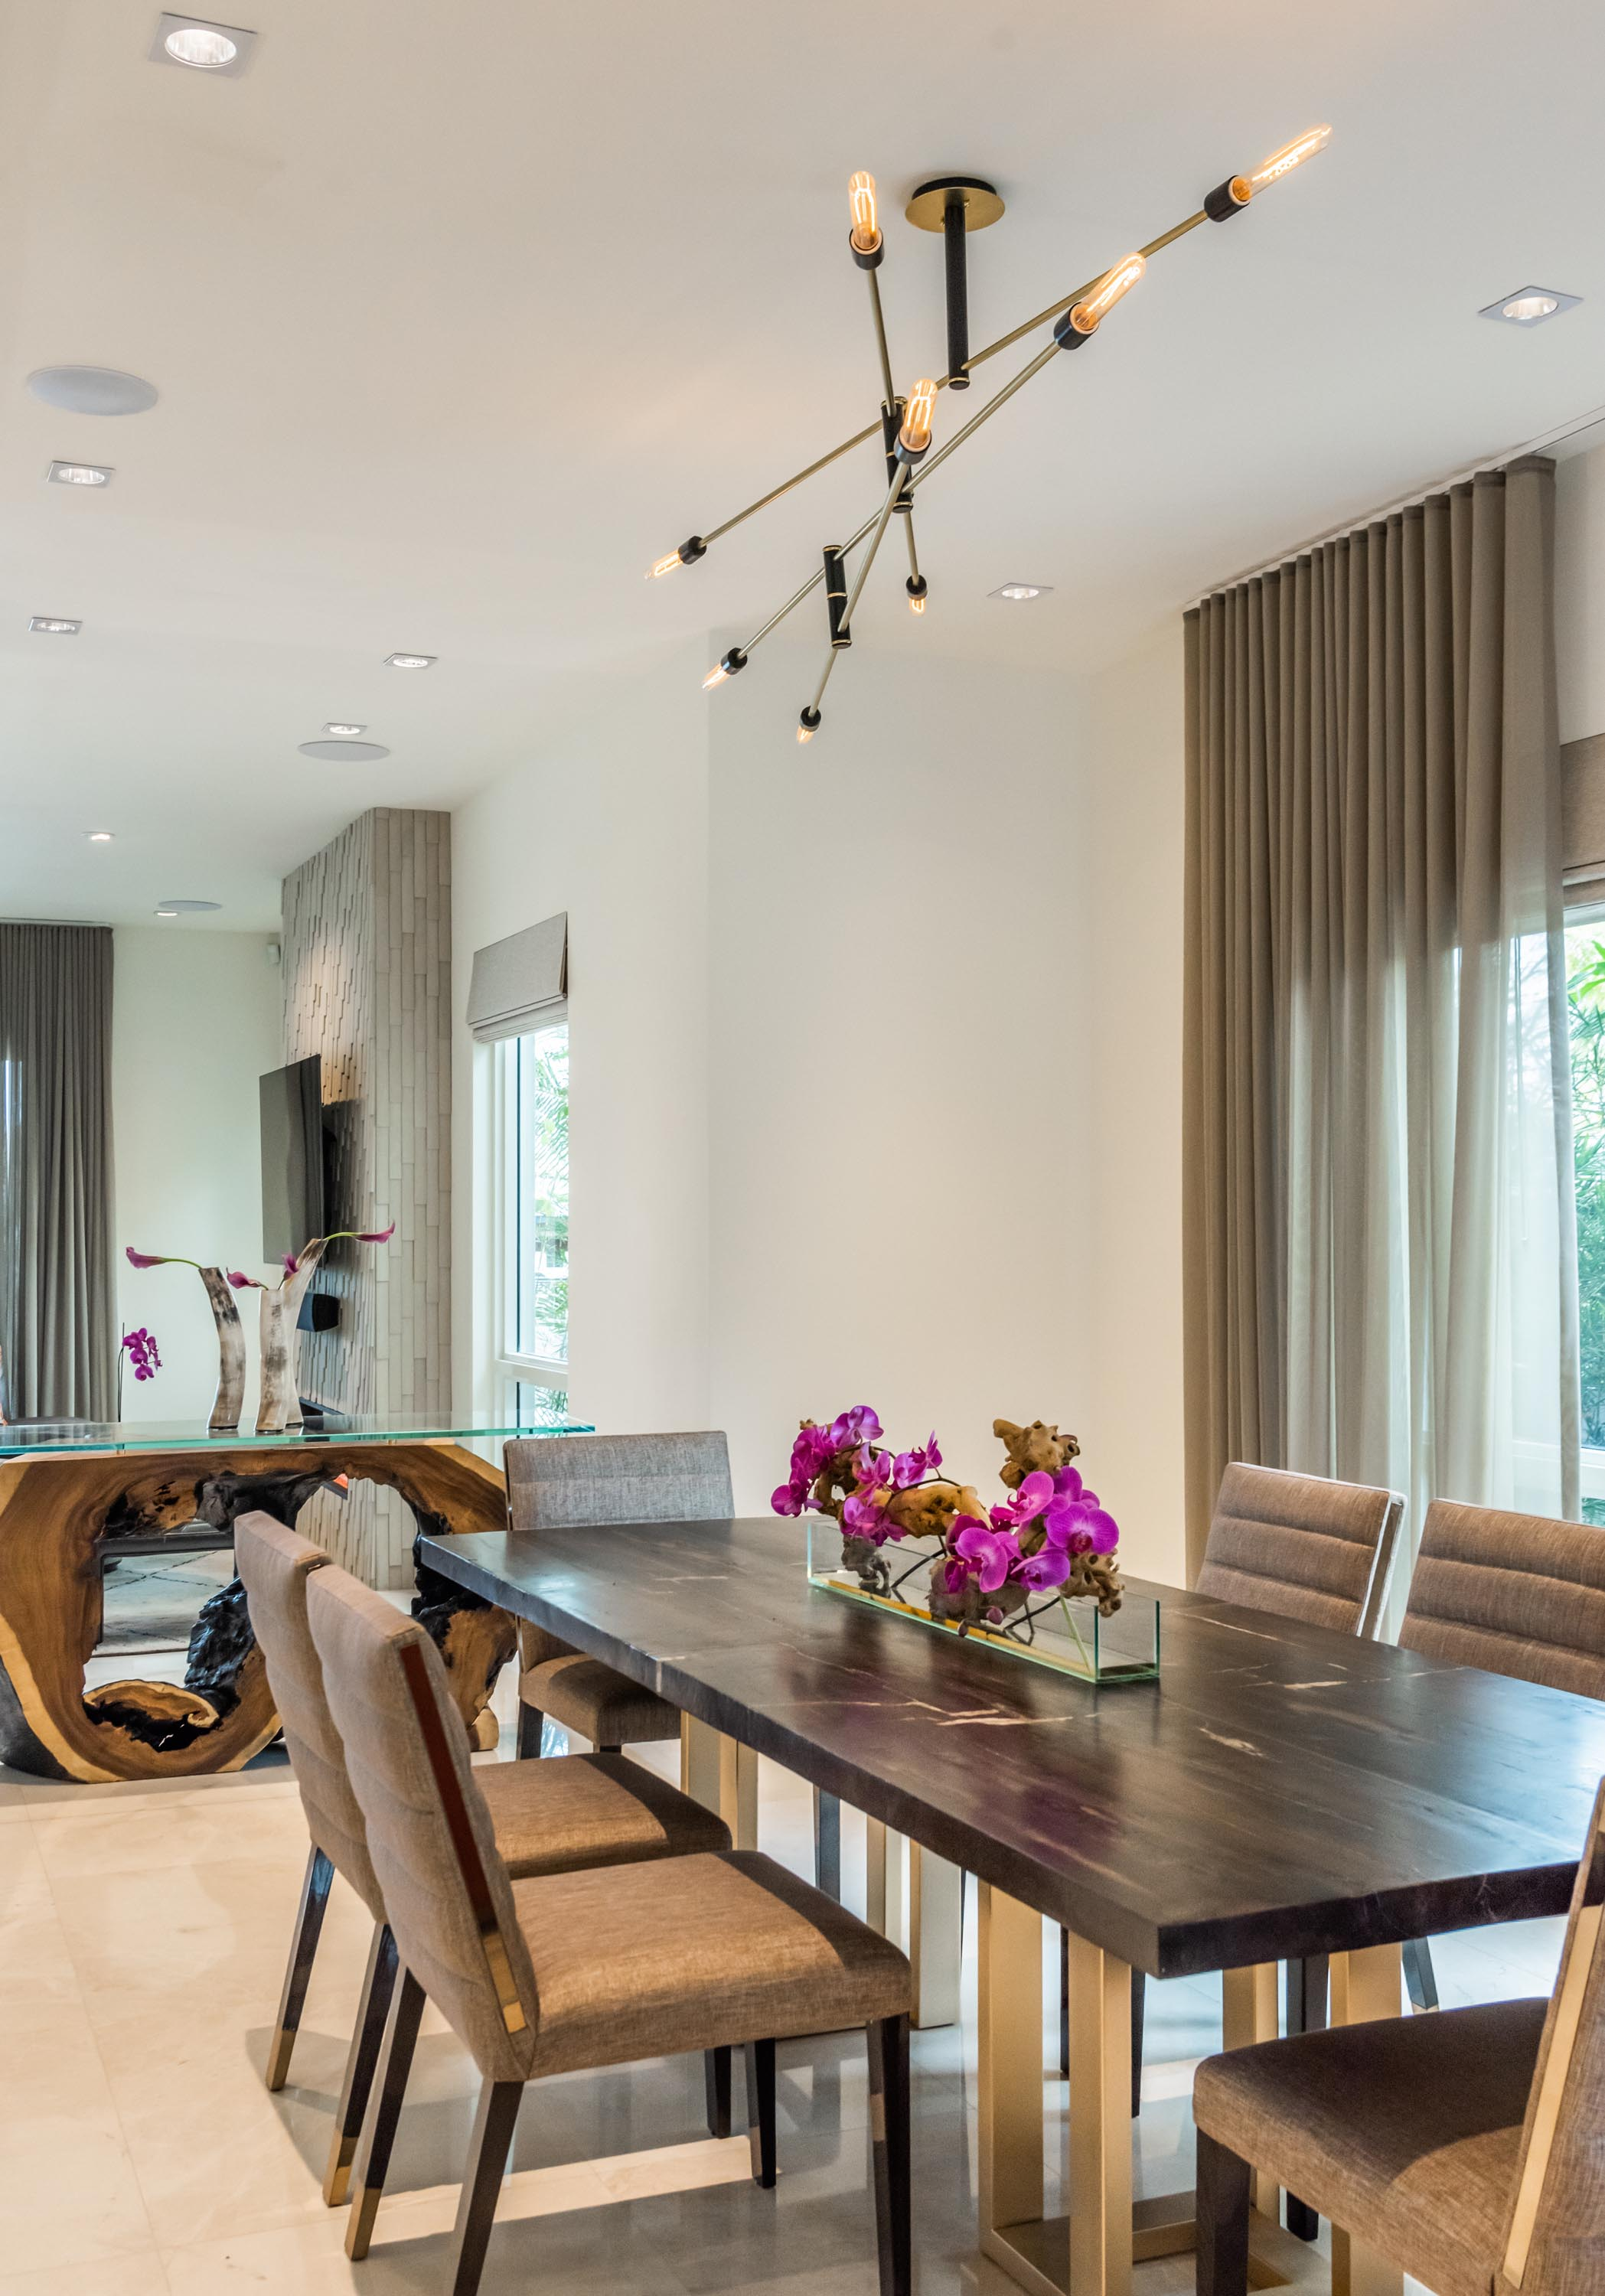 Dining room with wooden table, soft seat chairs and custom ceiling lamps